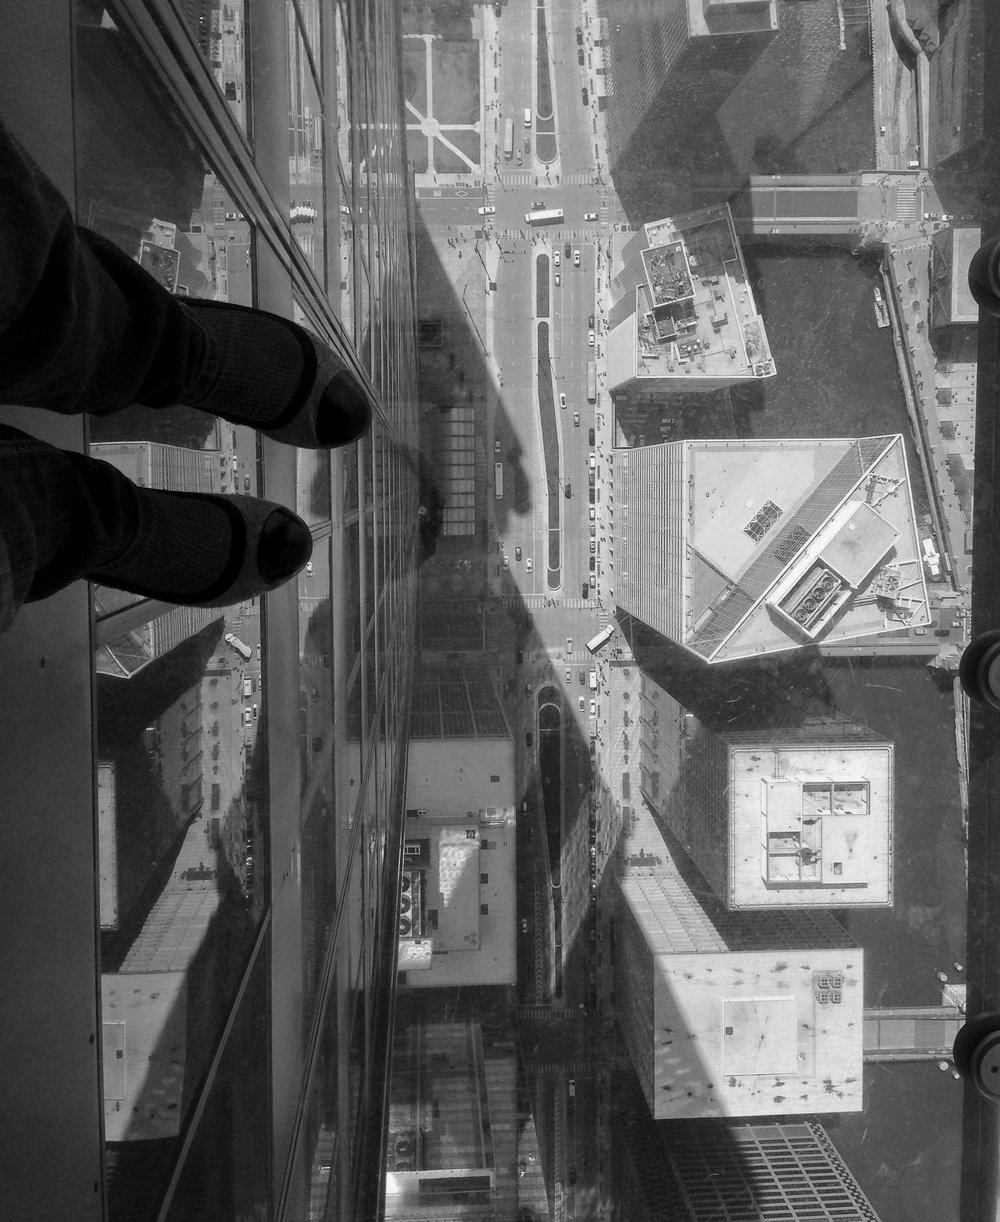 Looking down from the Willis Tower (Sears Tower) Skydeck in Chicago.